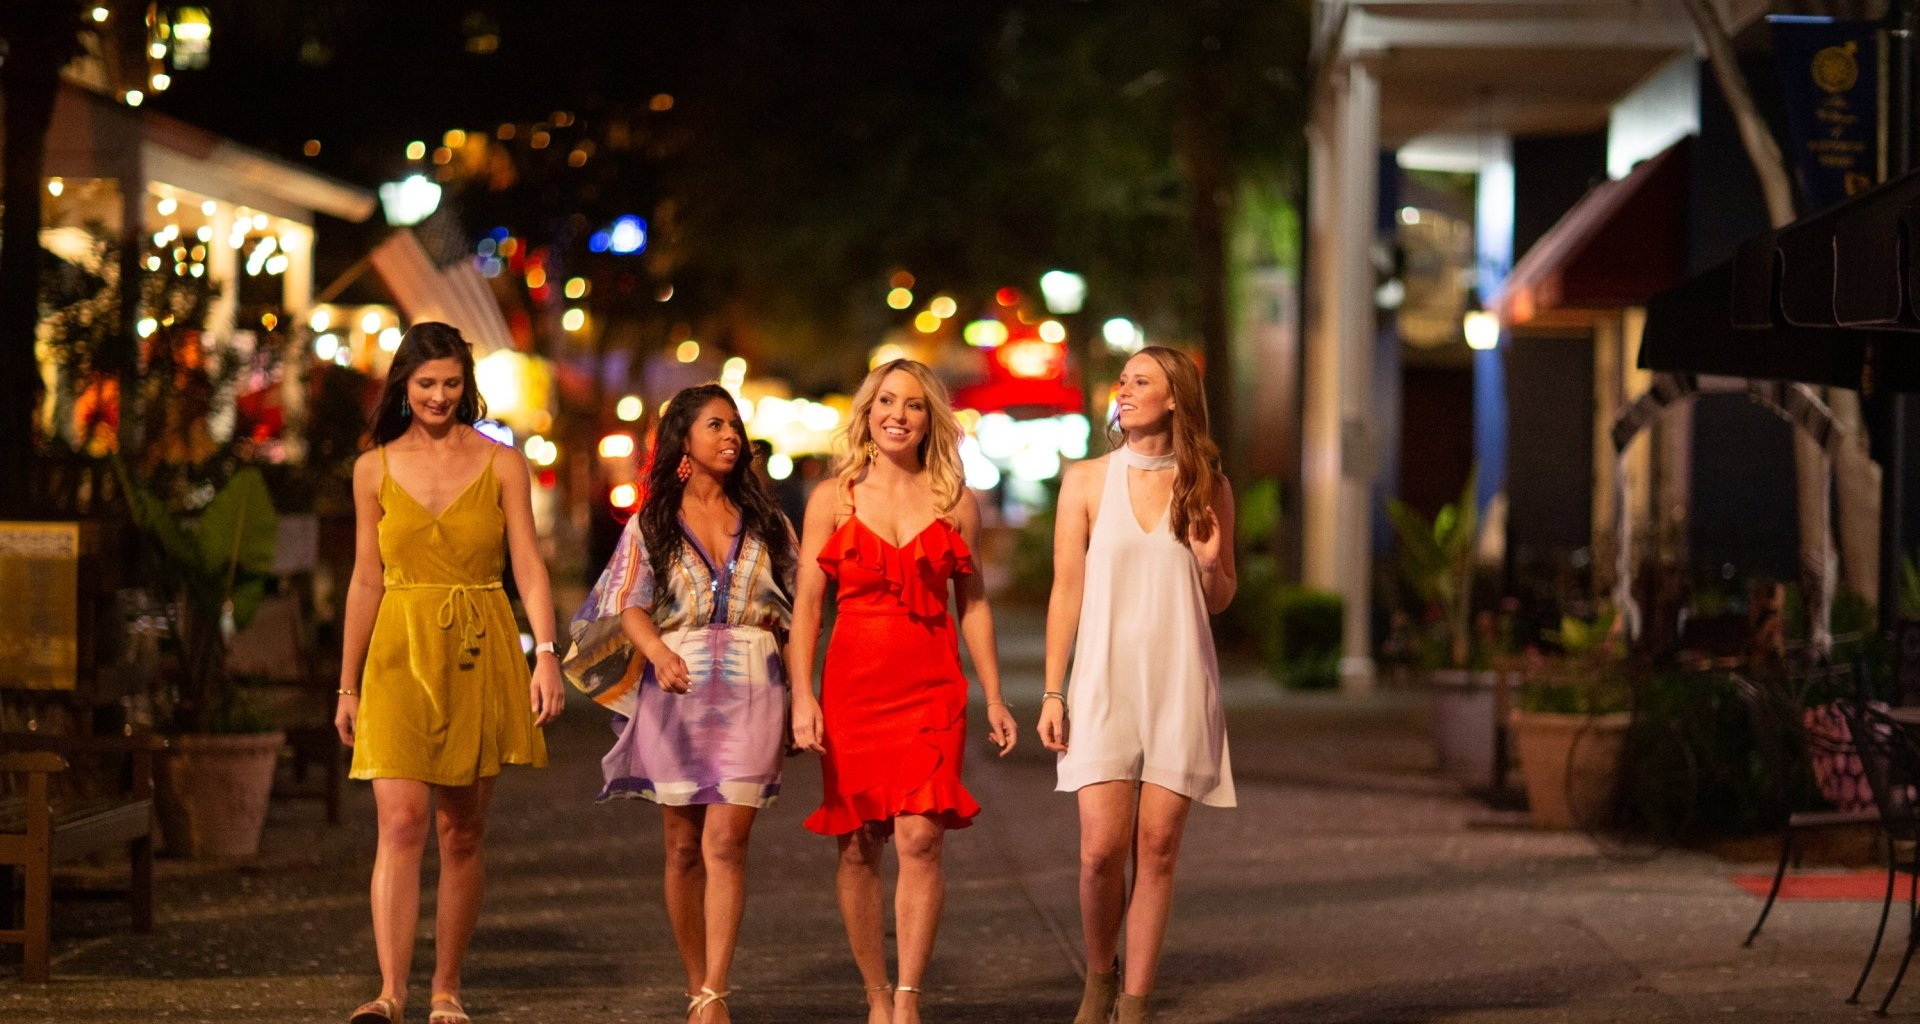 Four women strolling the streets at Baytowne Wharf